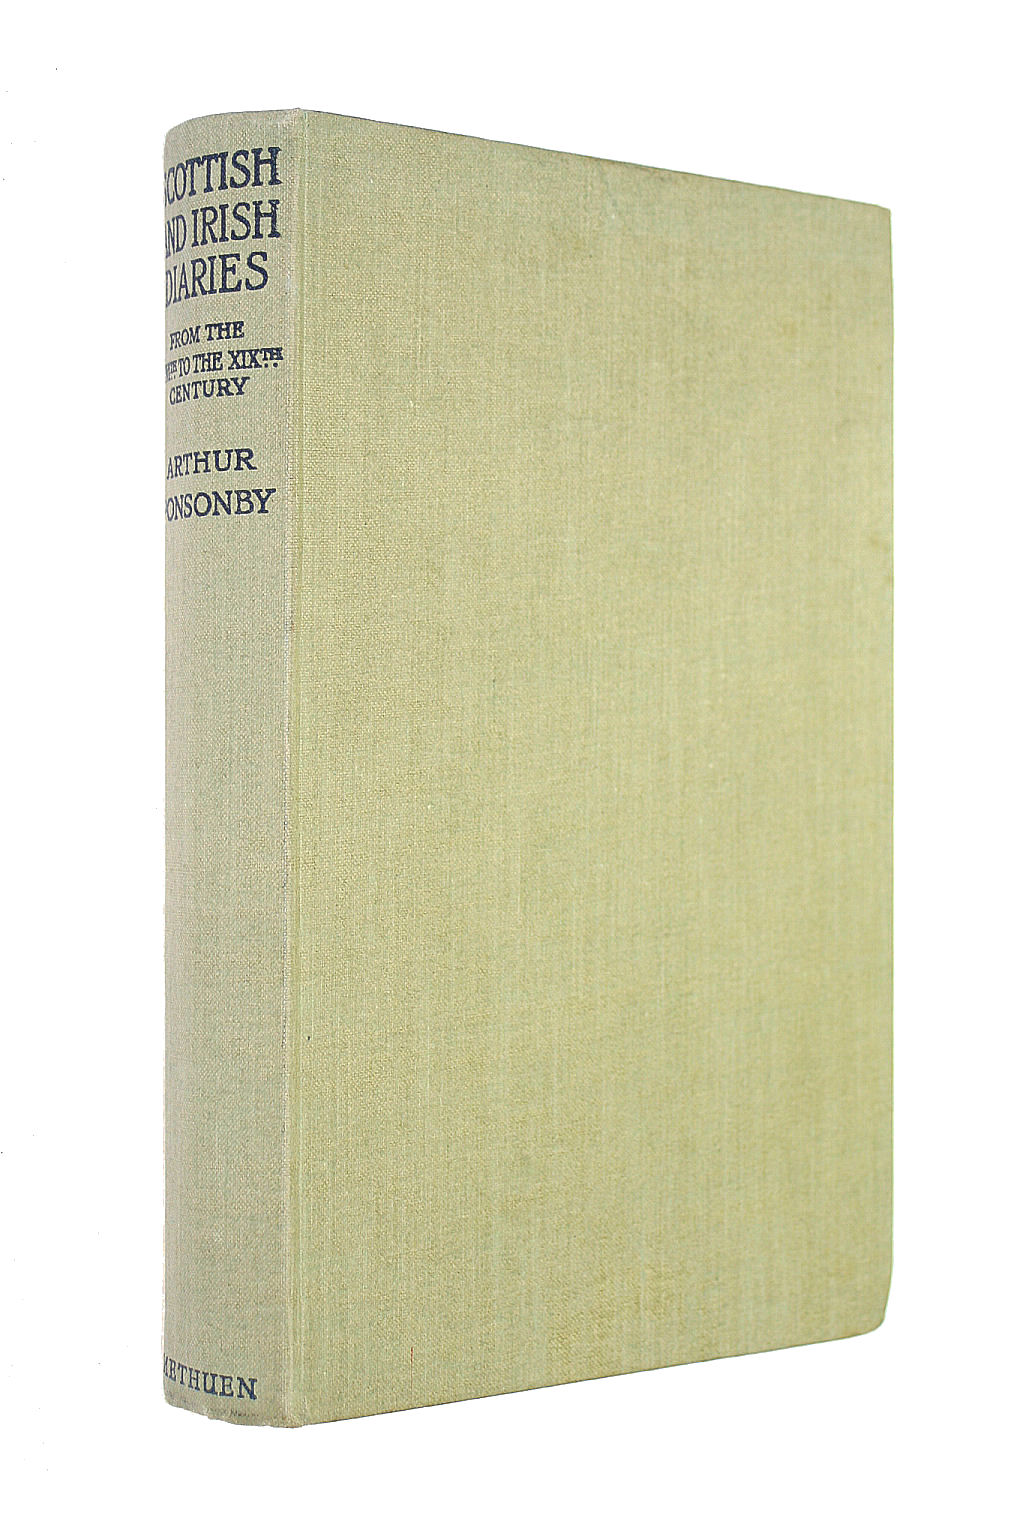 Image for Scottish and Irish Diaries, from the sixteenth to the nineteenth century. With an introduction